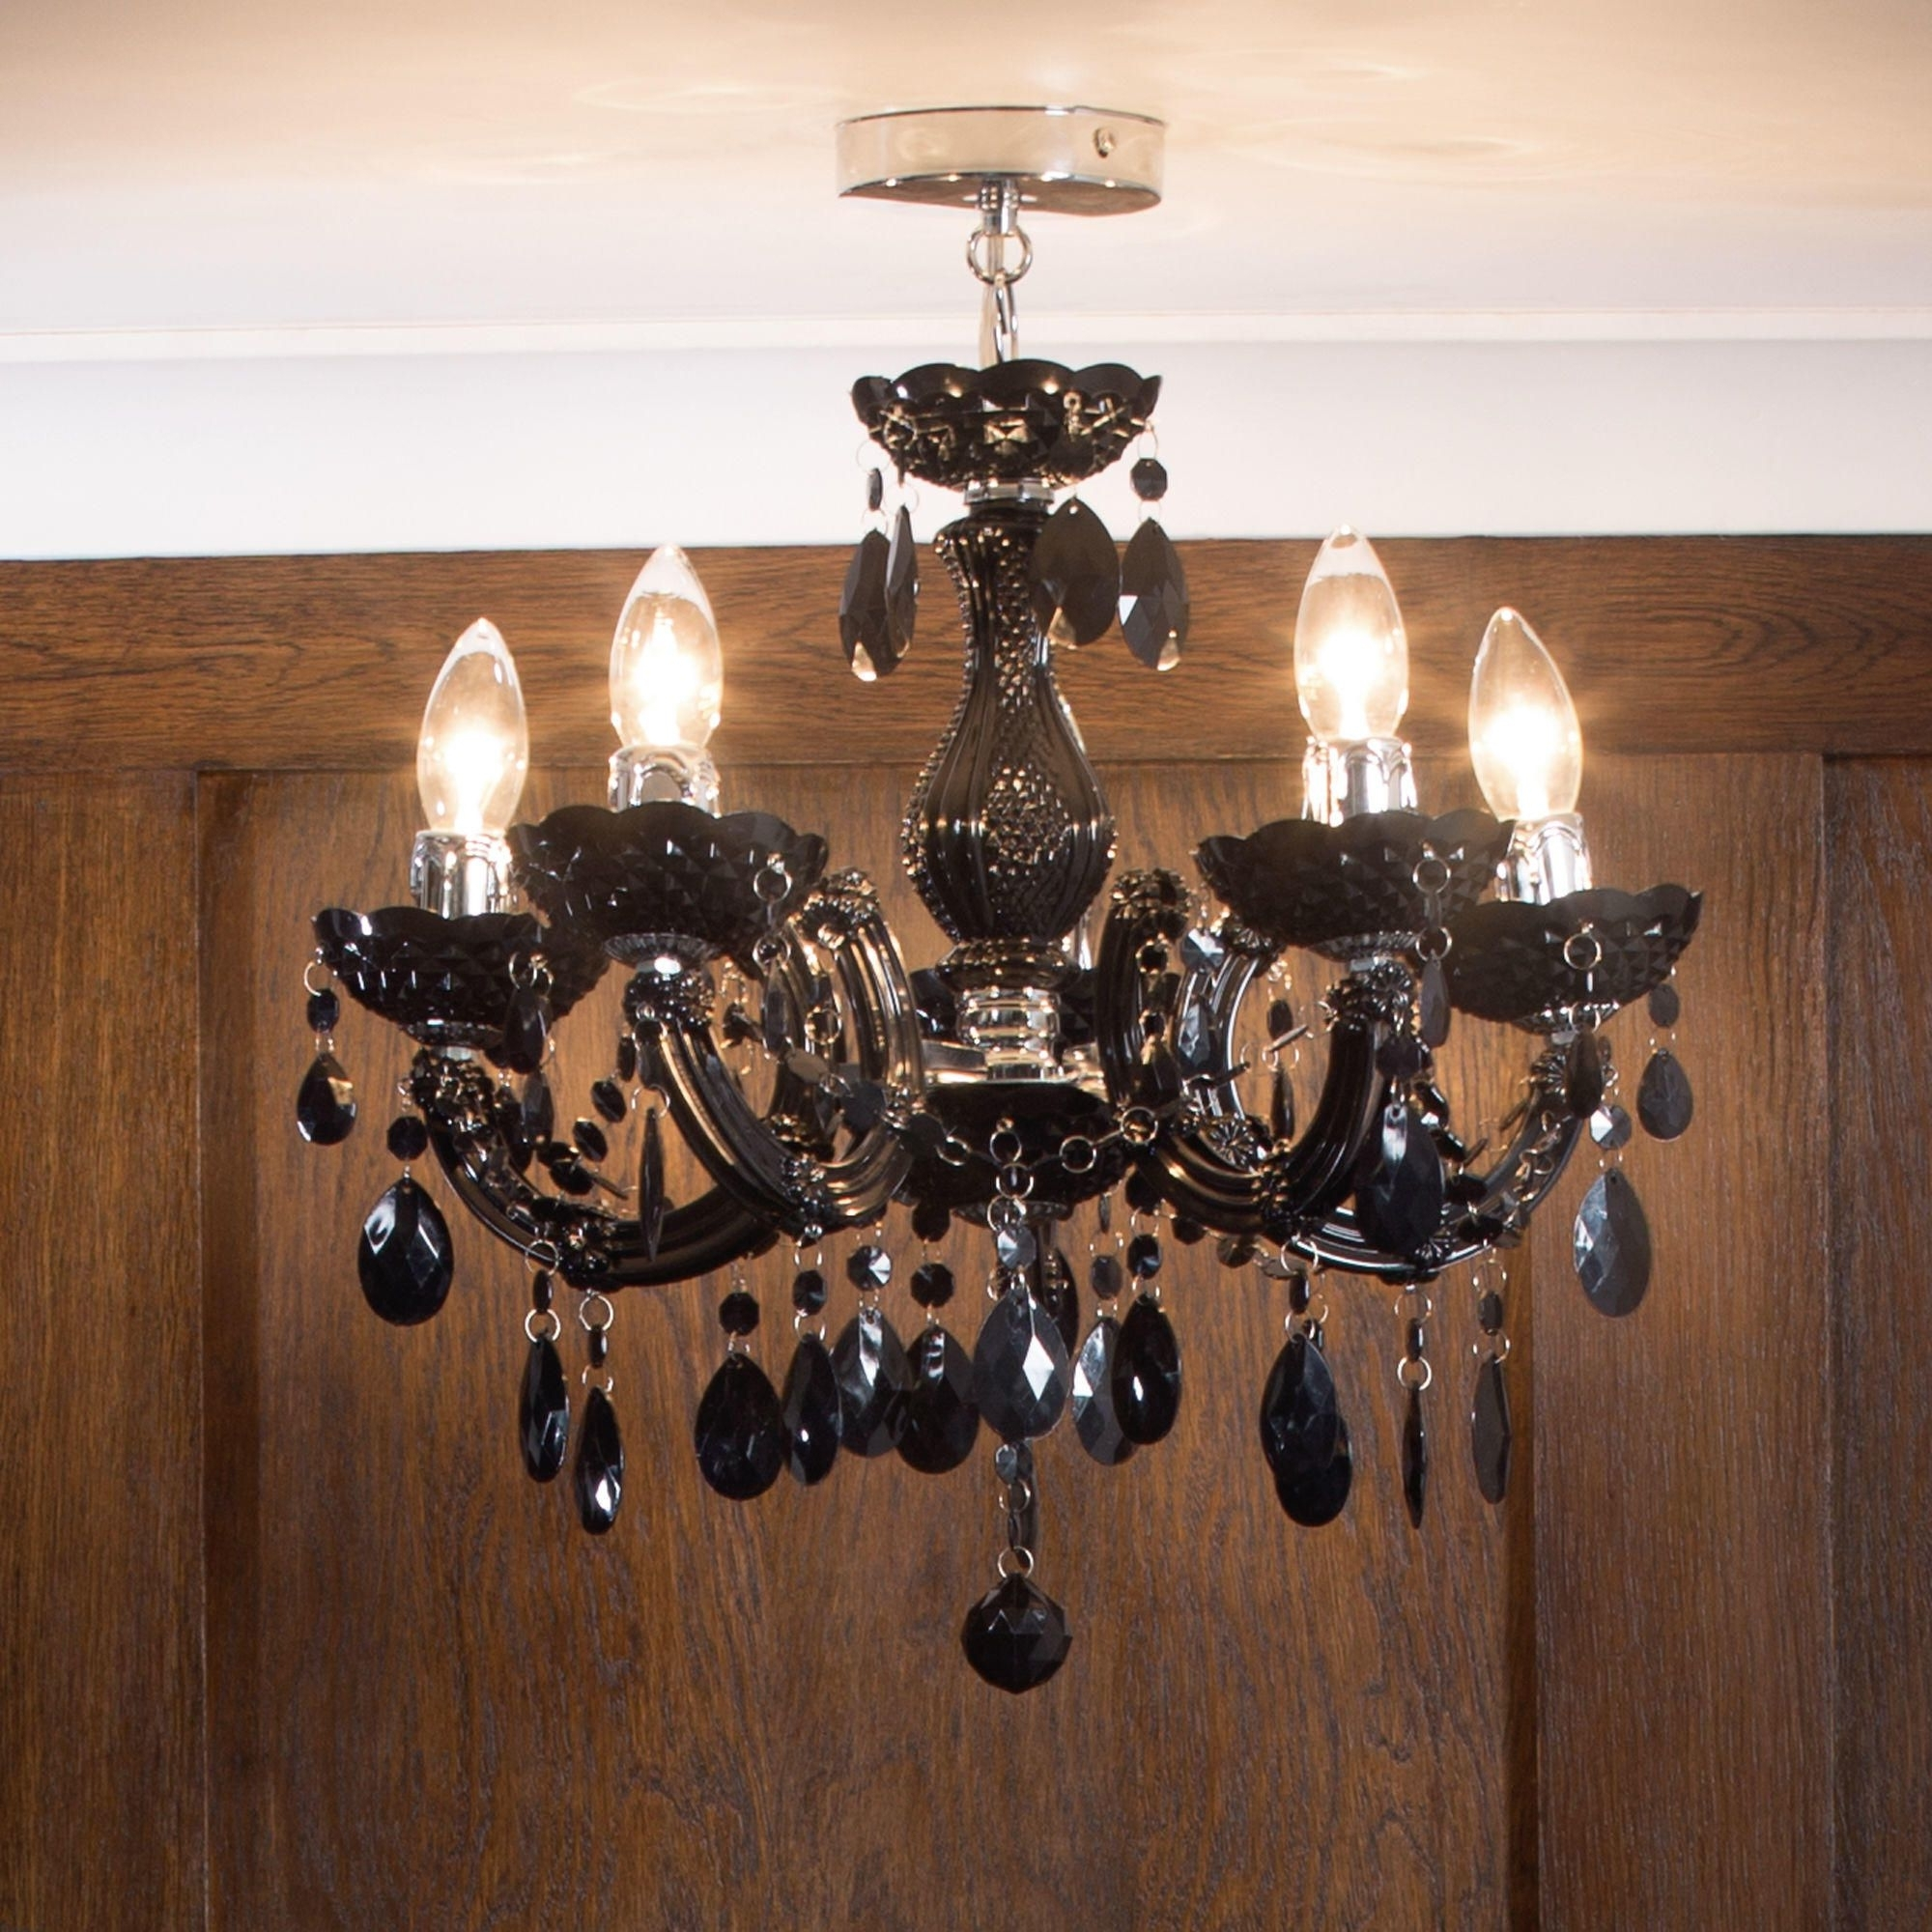 Chandeliers For Low Ceilings Pertaining To Favorite Chandeliers For Low Ceilings – Litecraft (View 8 of 15)